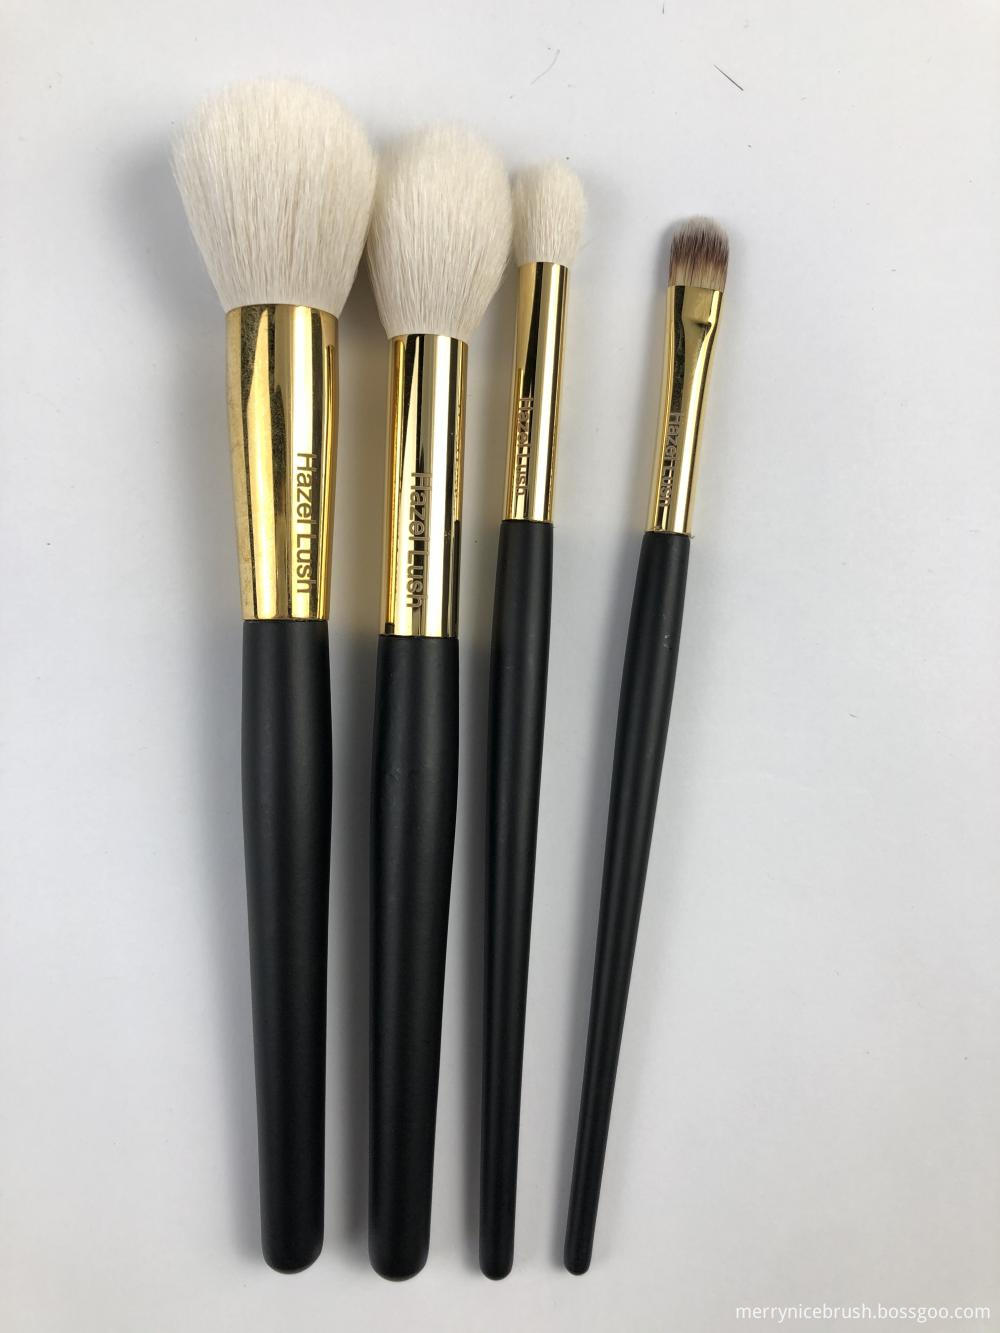 4 Pc Hazel Lush Makeup Brush